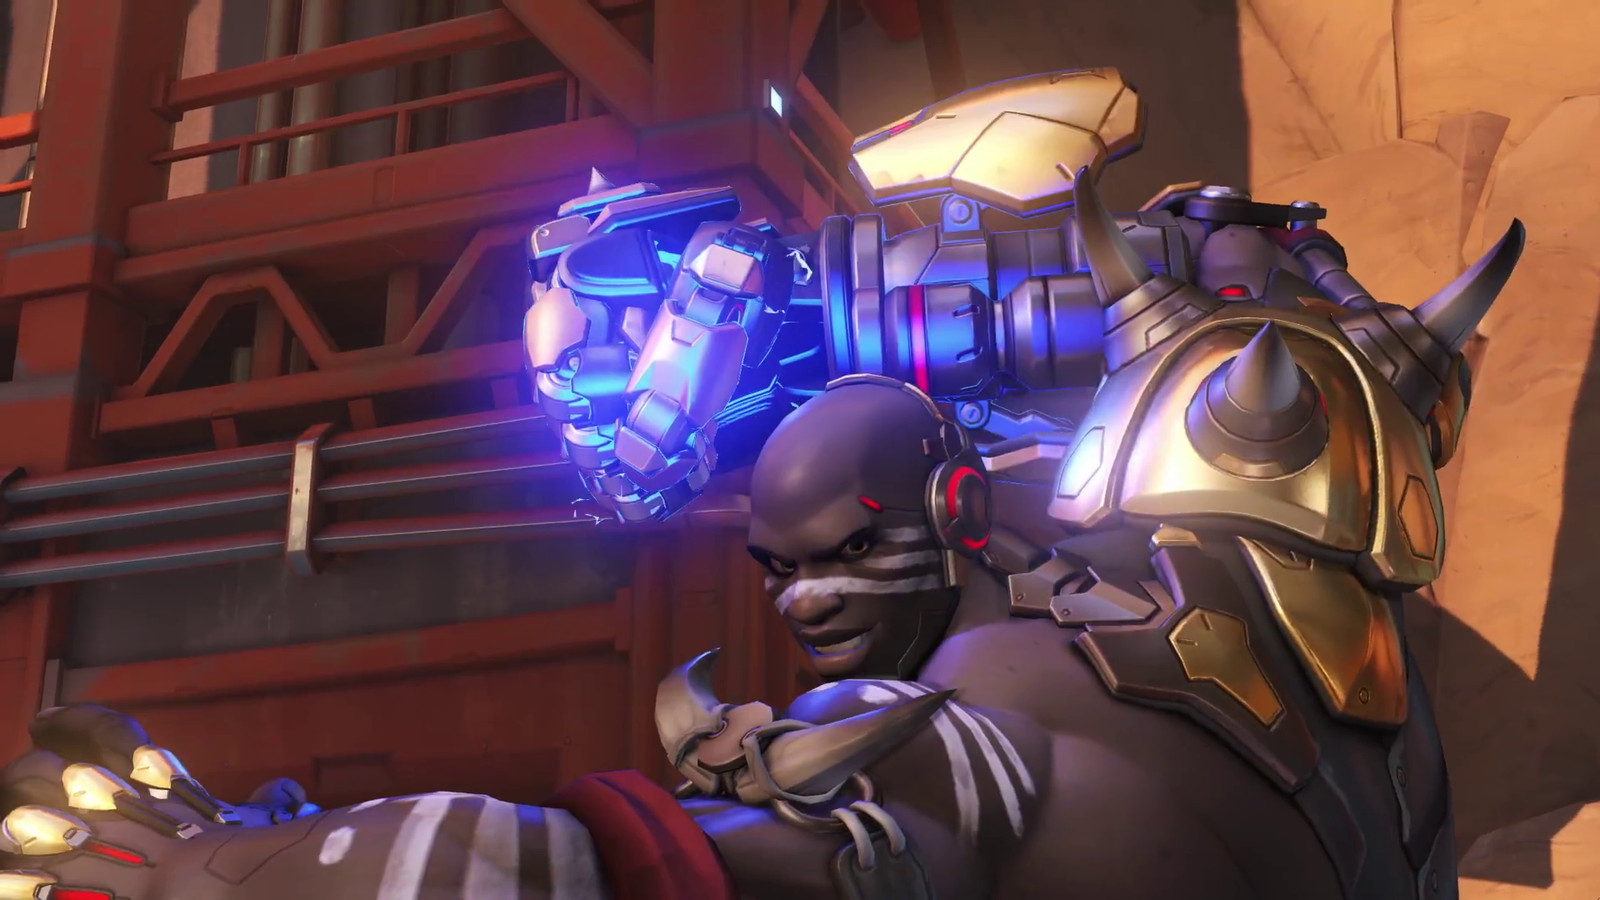 Overwatch could be getting new weapons or weapon skins